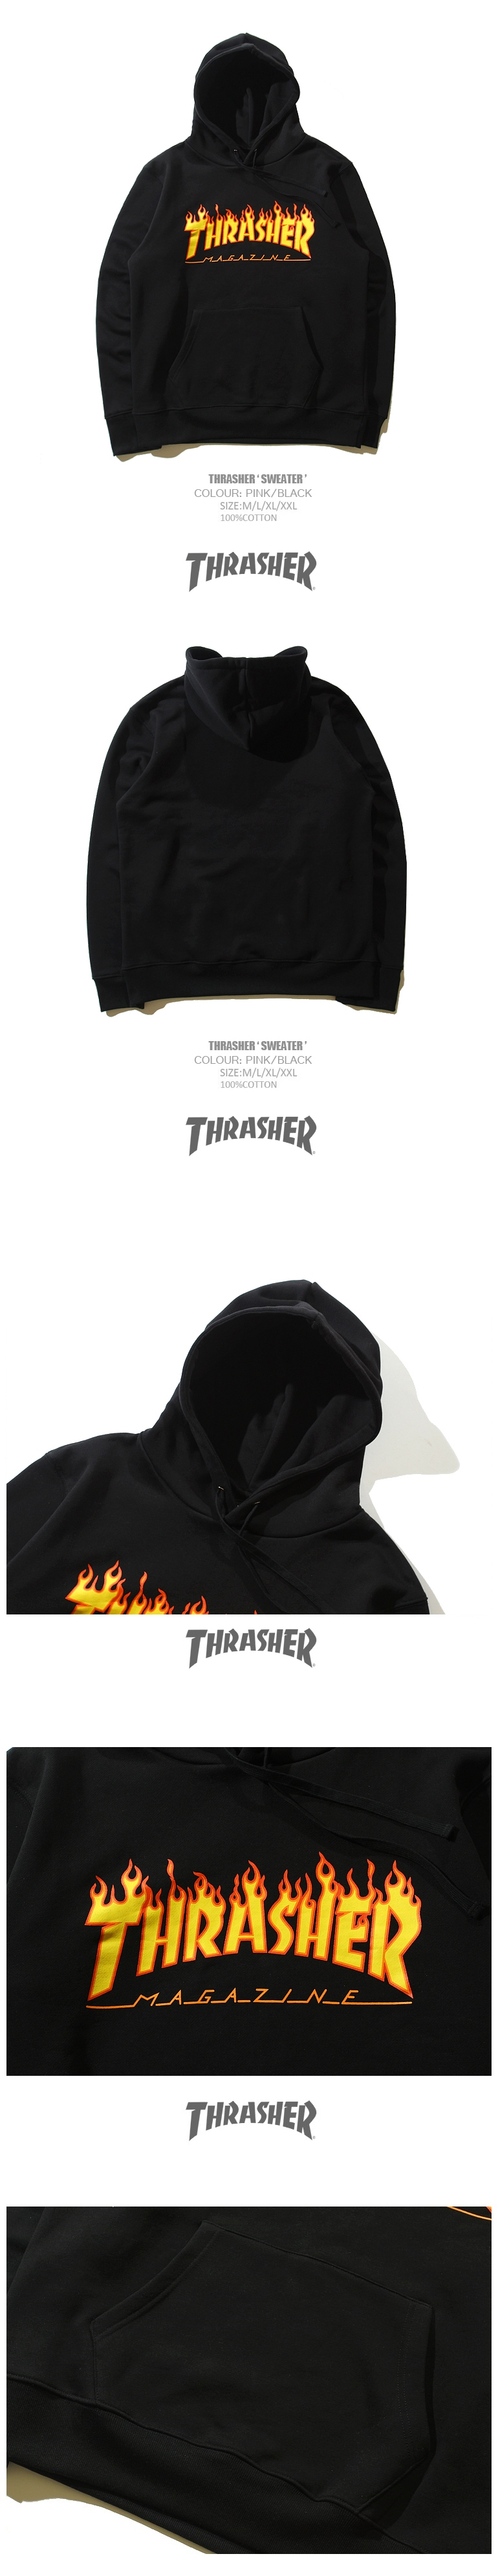 เสื้อฮูด THRASHER FLAM LOGO 100% pre-shrunk cotton T-shirt emblazoned with our classic Thrasher magazine flame logo